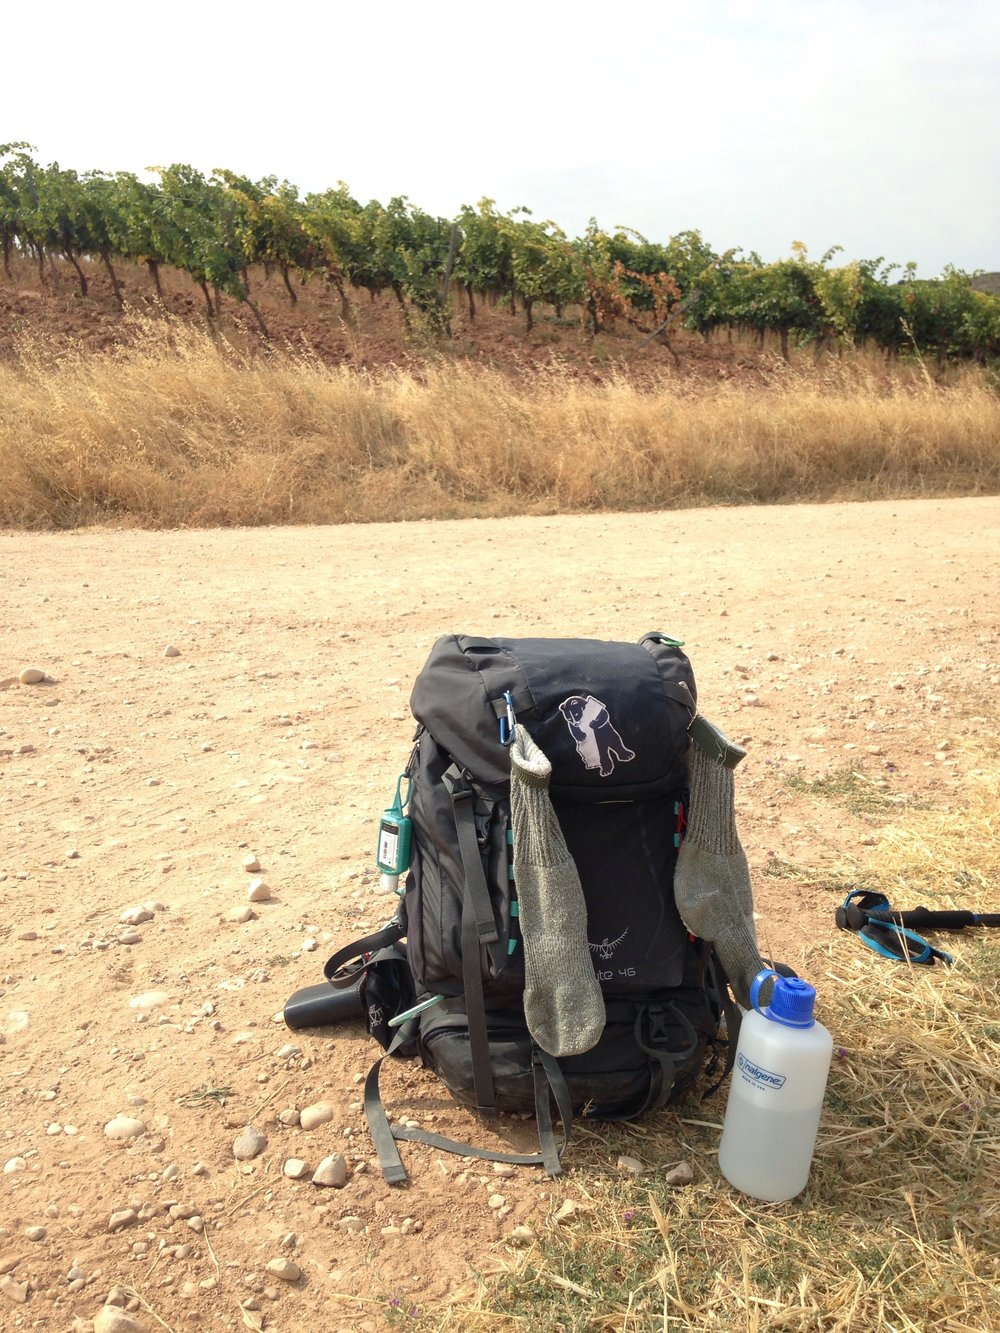 Drying socks and dirty backpack on the dusty road to los arcos